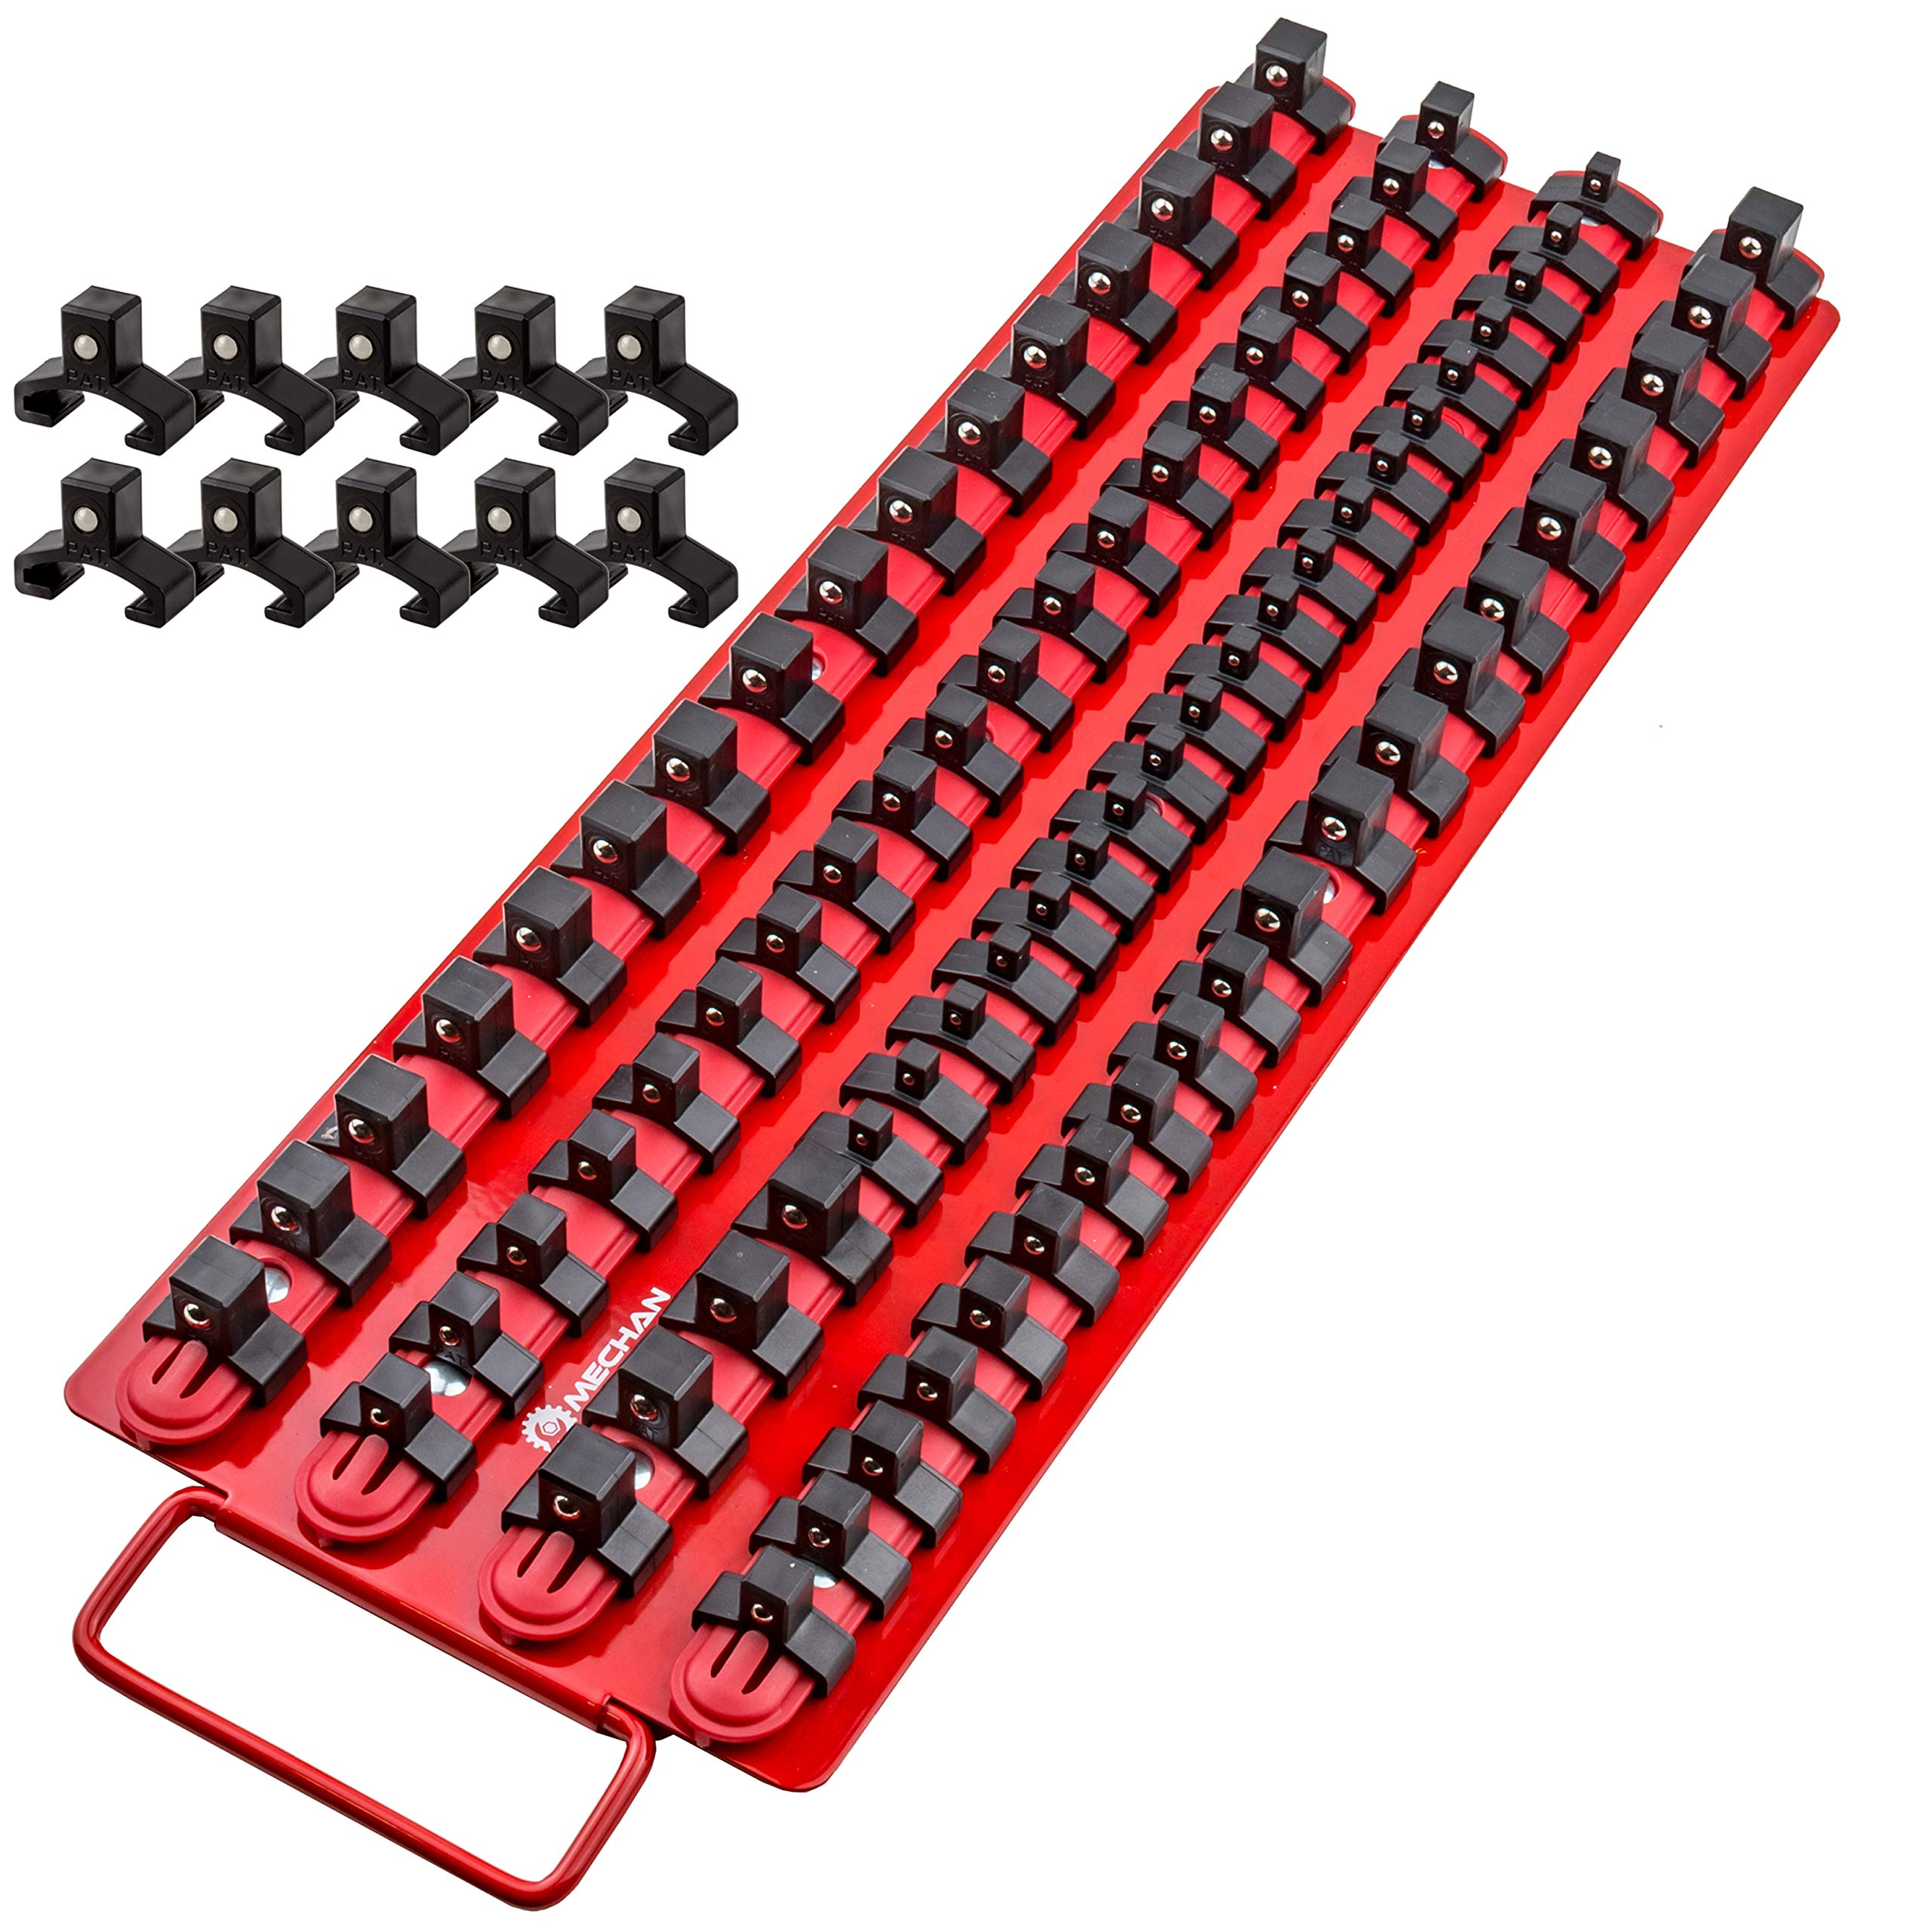 Mechan Tools 80pc Portable Socket Organizer Tray - Premium Quality Socket Tray - Adjustable Socket Holder - Sturdy Socket Rails w/Spring Loaded Ball Bearing Socket Clips For Tool Box Organization by Mechan Tools